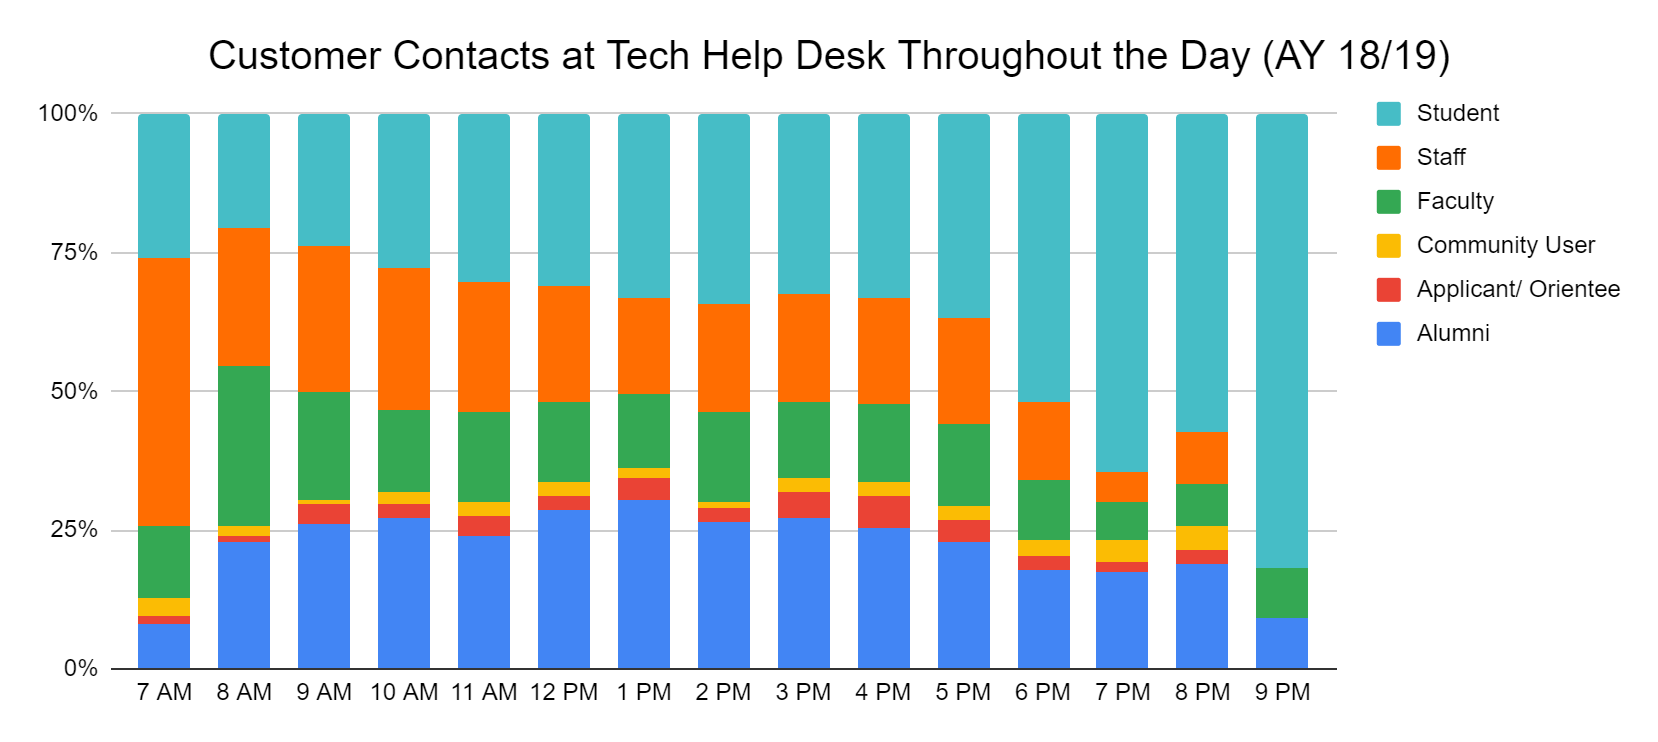 Customer Contacts at Tech Help Desk Throughout the Day